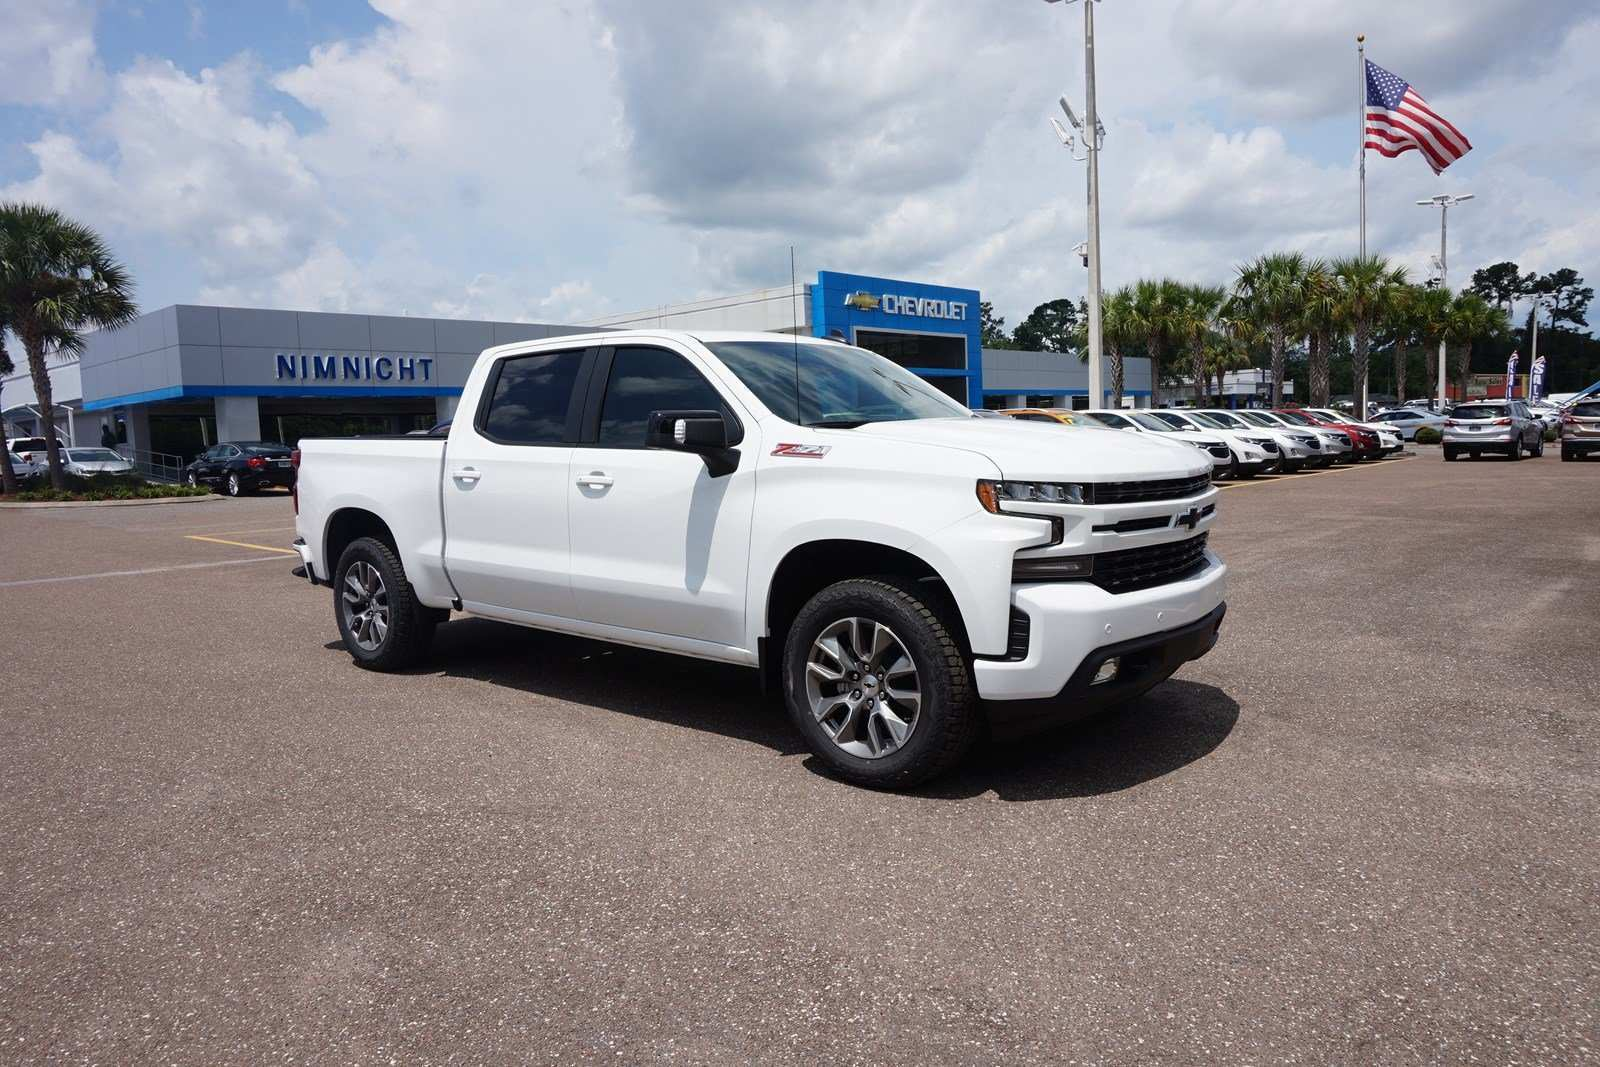 29 All New 2019 Chevrolet 1500 For Sale Specs with 2019 Chevrolet 1500 For Sale